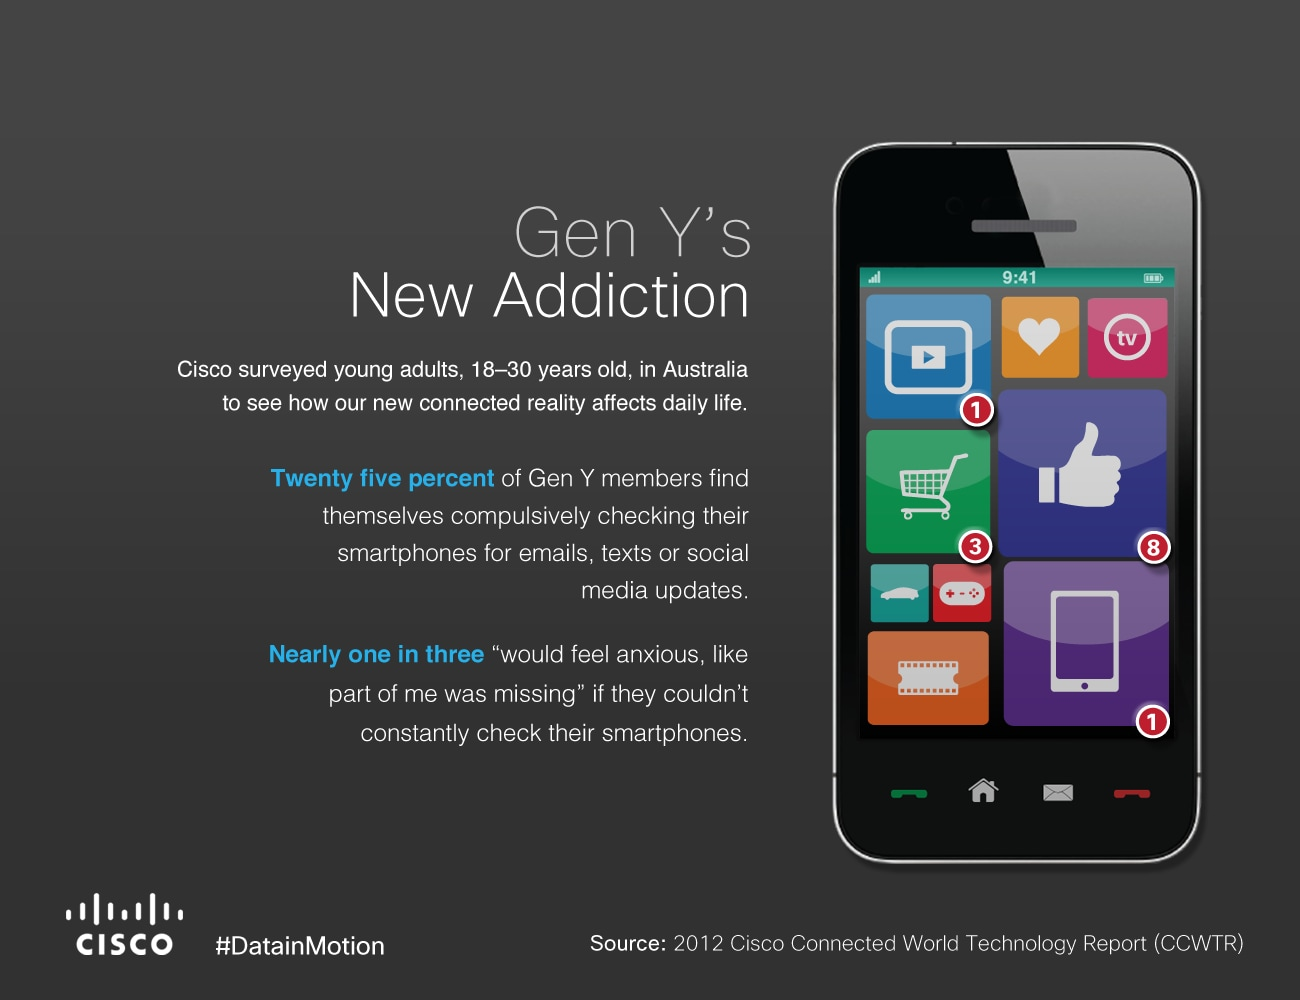 12.   Gen Y's New Addition (Infographic